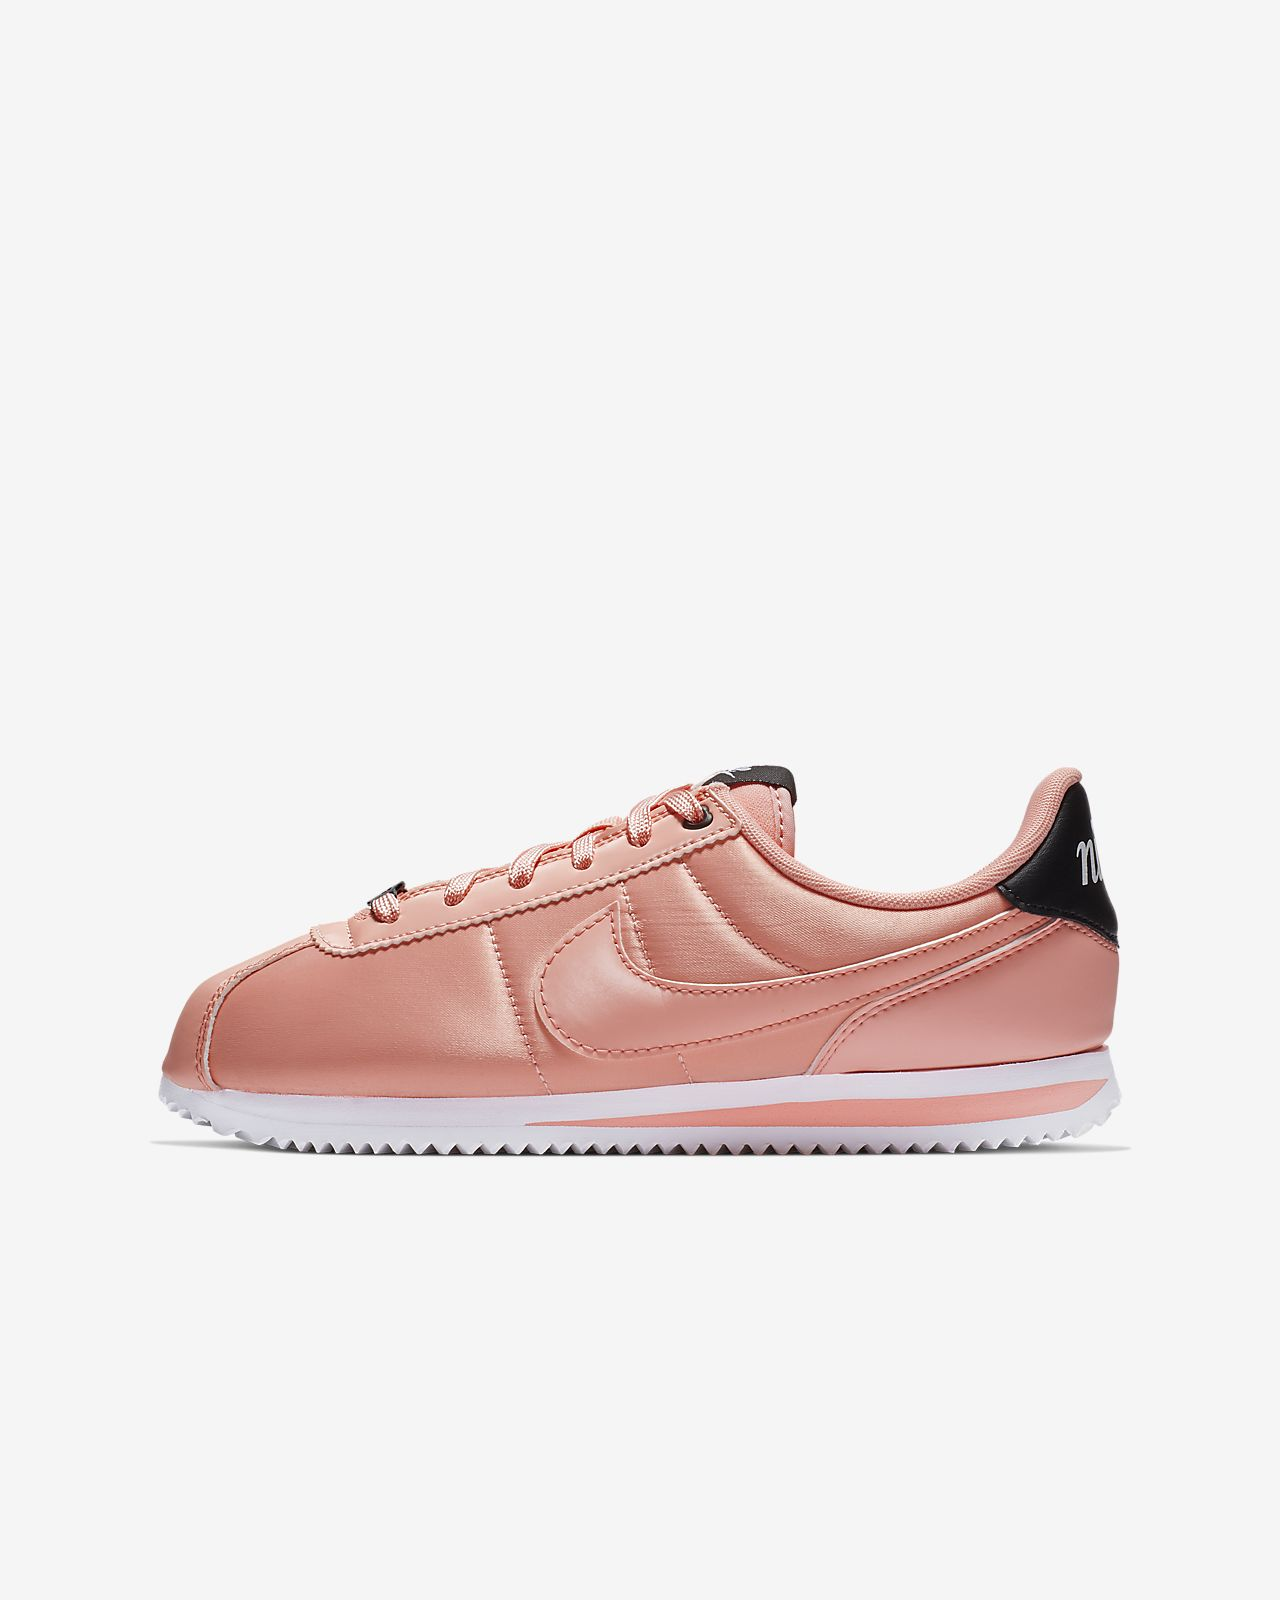 sneakers for cheap 37e37 f7886 Older Kids  Shoe. Nike Cortez Basic TXT VDAY